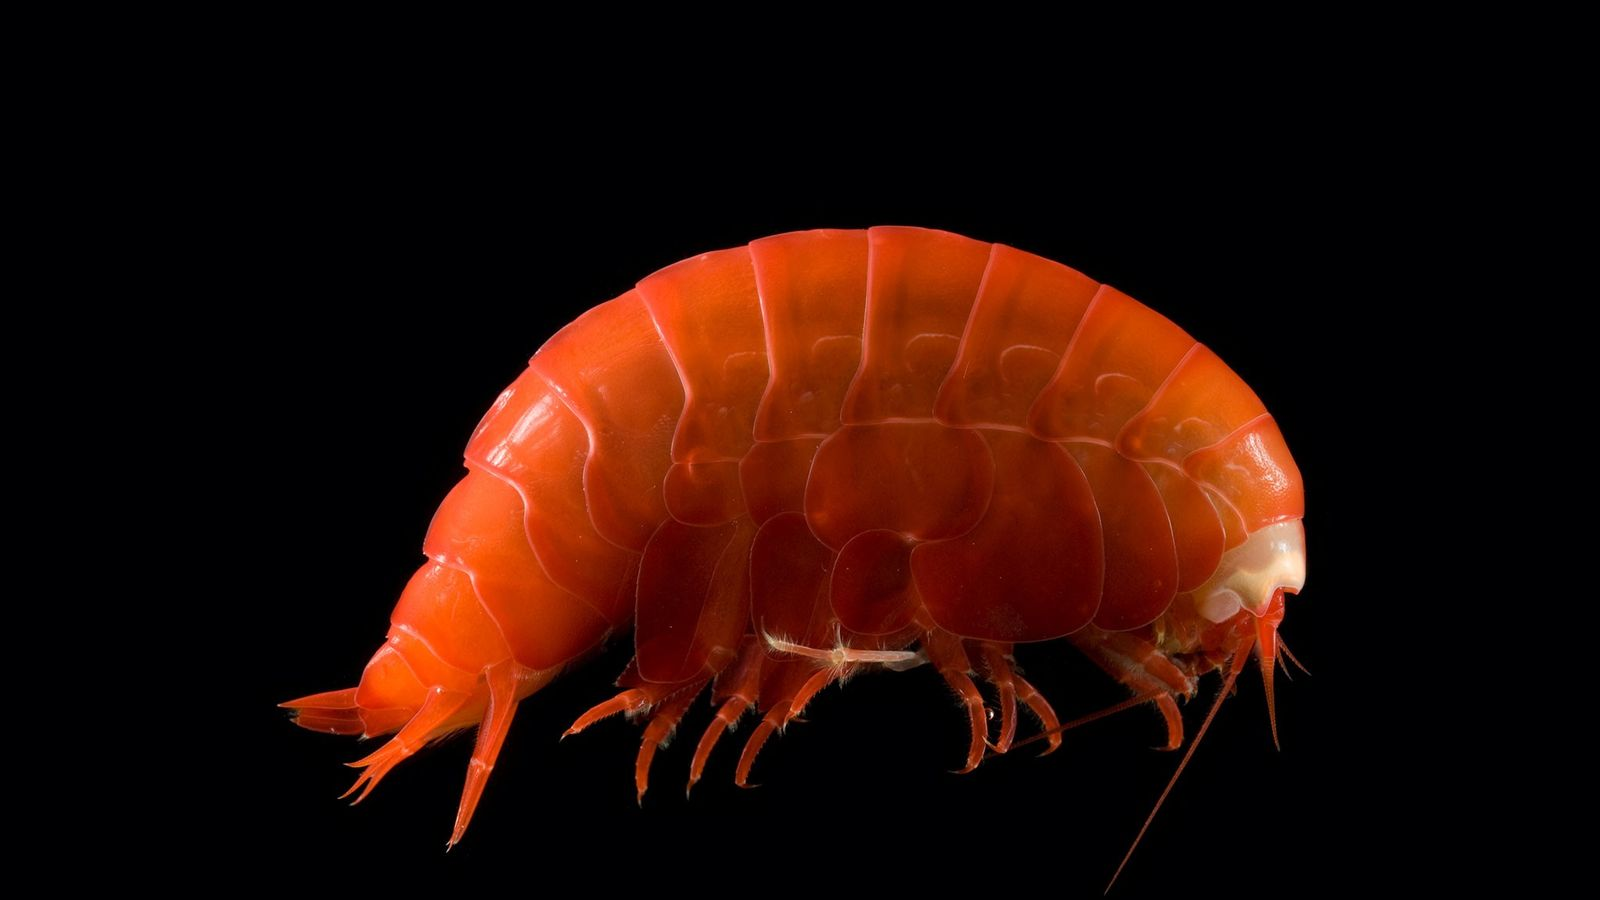 Deep sea amphipods like this small shrimp-like creature are eating miscropic pieces of plastic and tiny ...